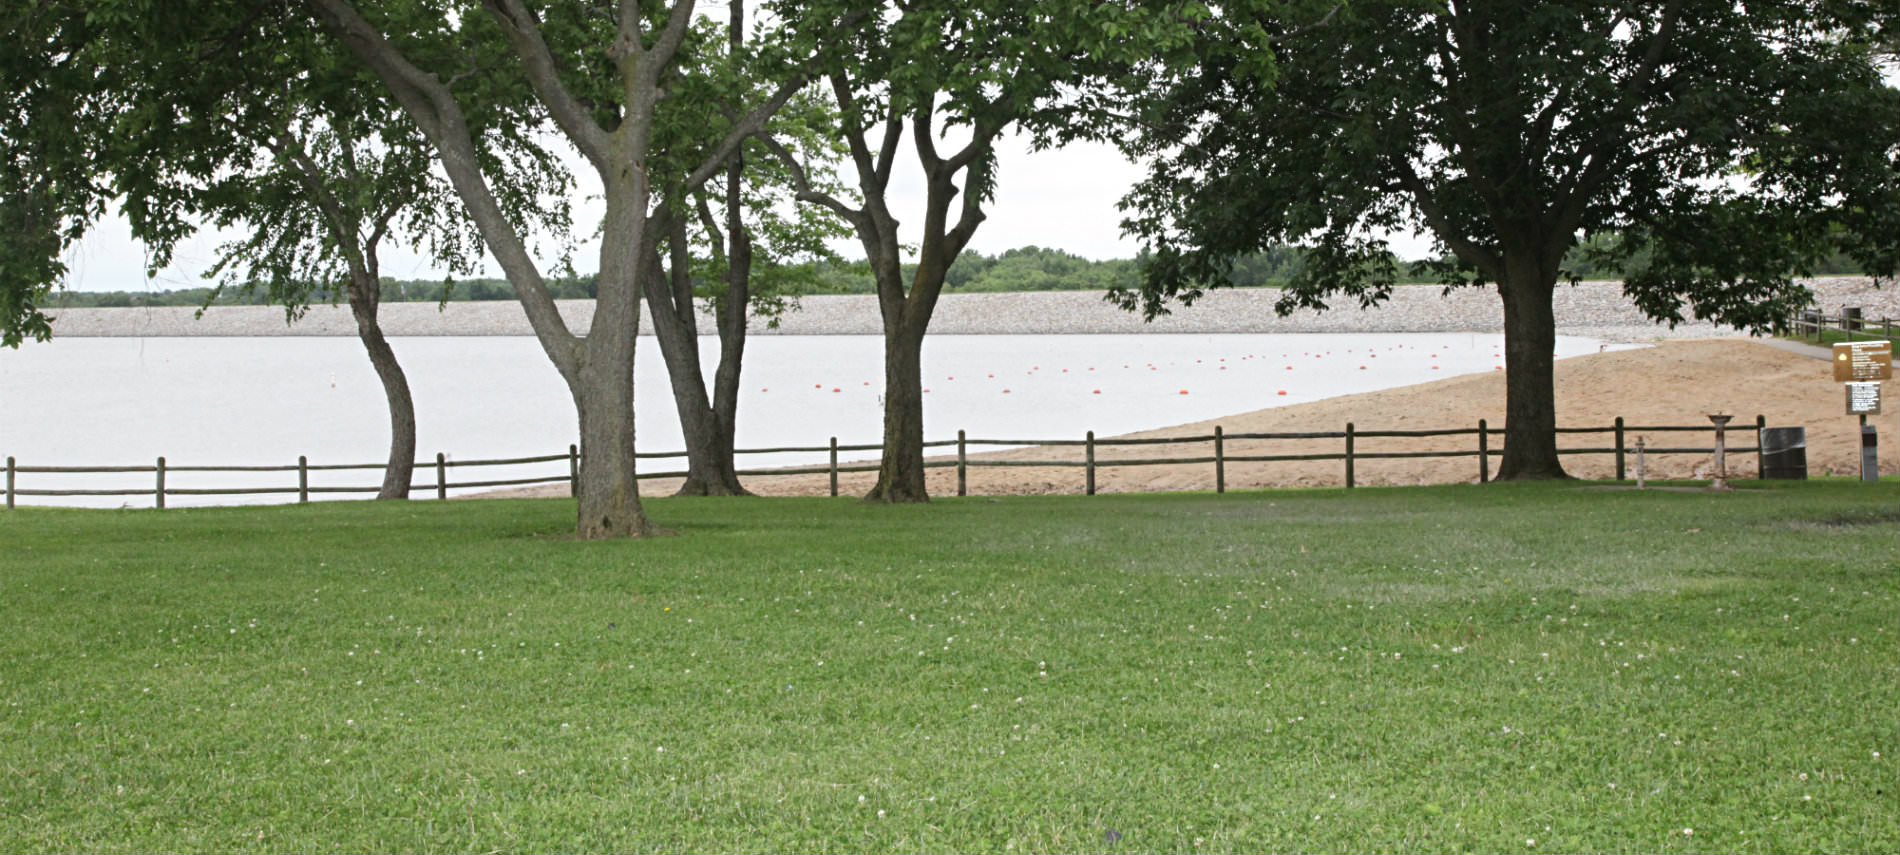 Lake with sandy beach with treens and wooden fence. grassy area in front.